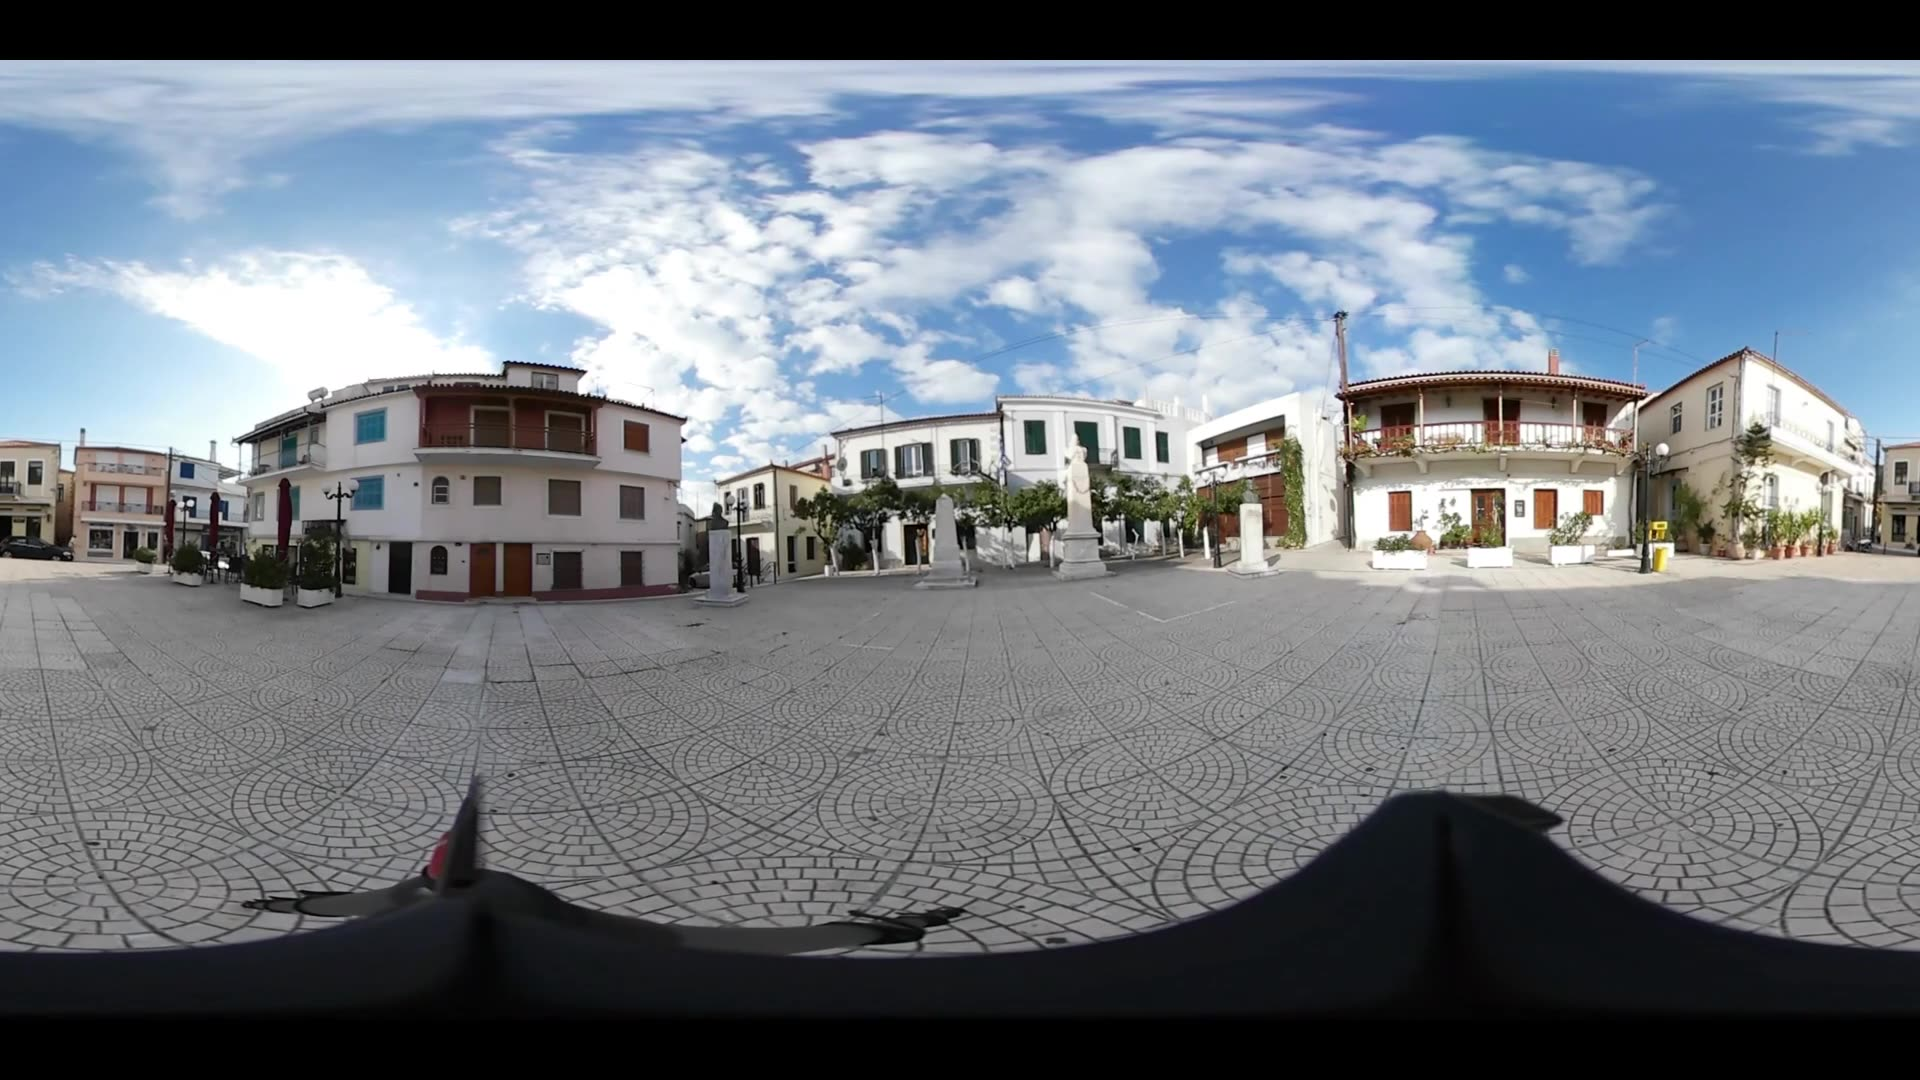 Virtual Reality 360 view from the pier in Limni Greece